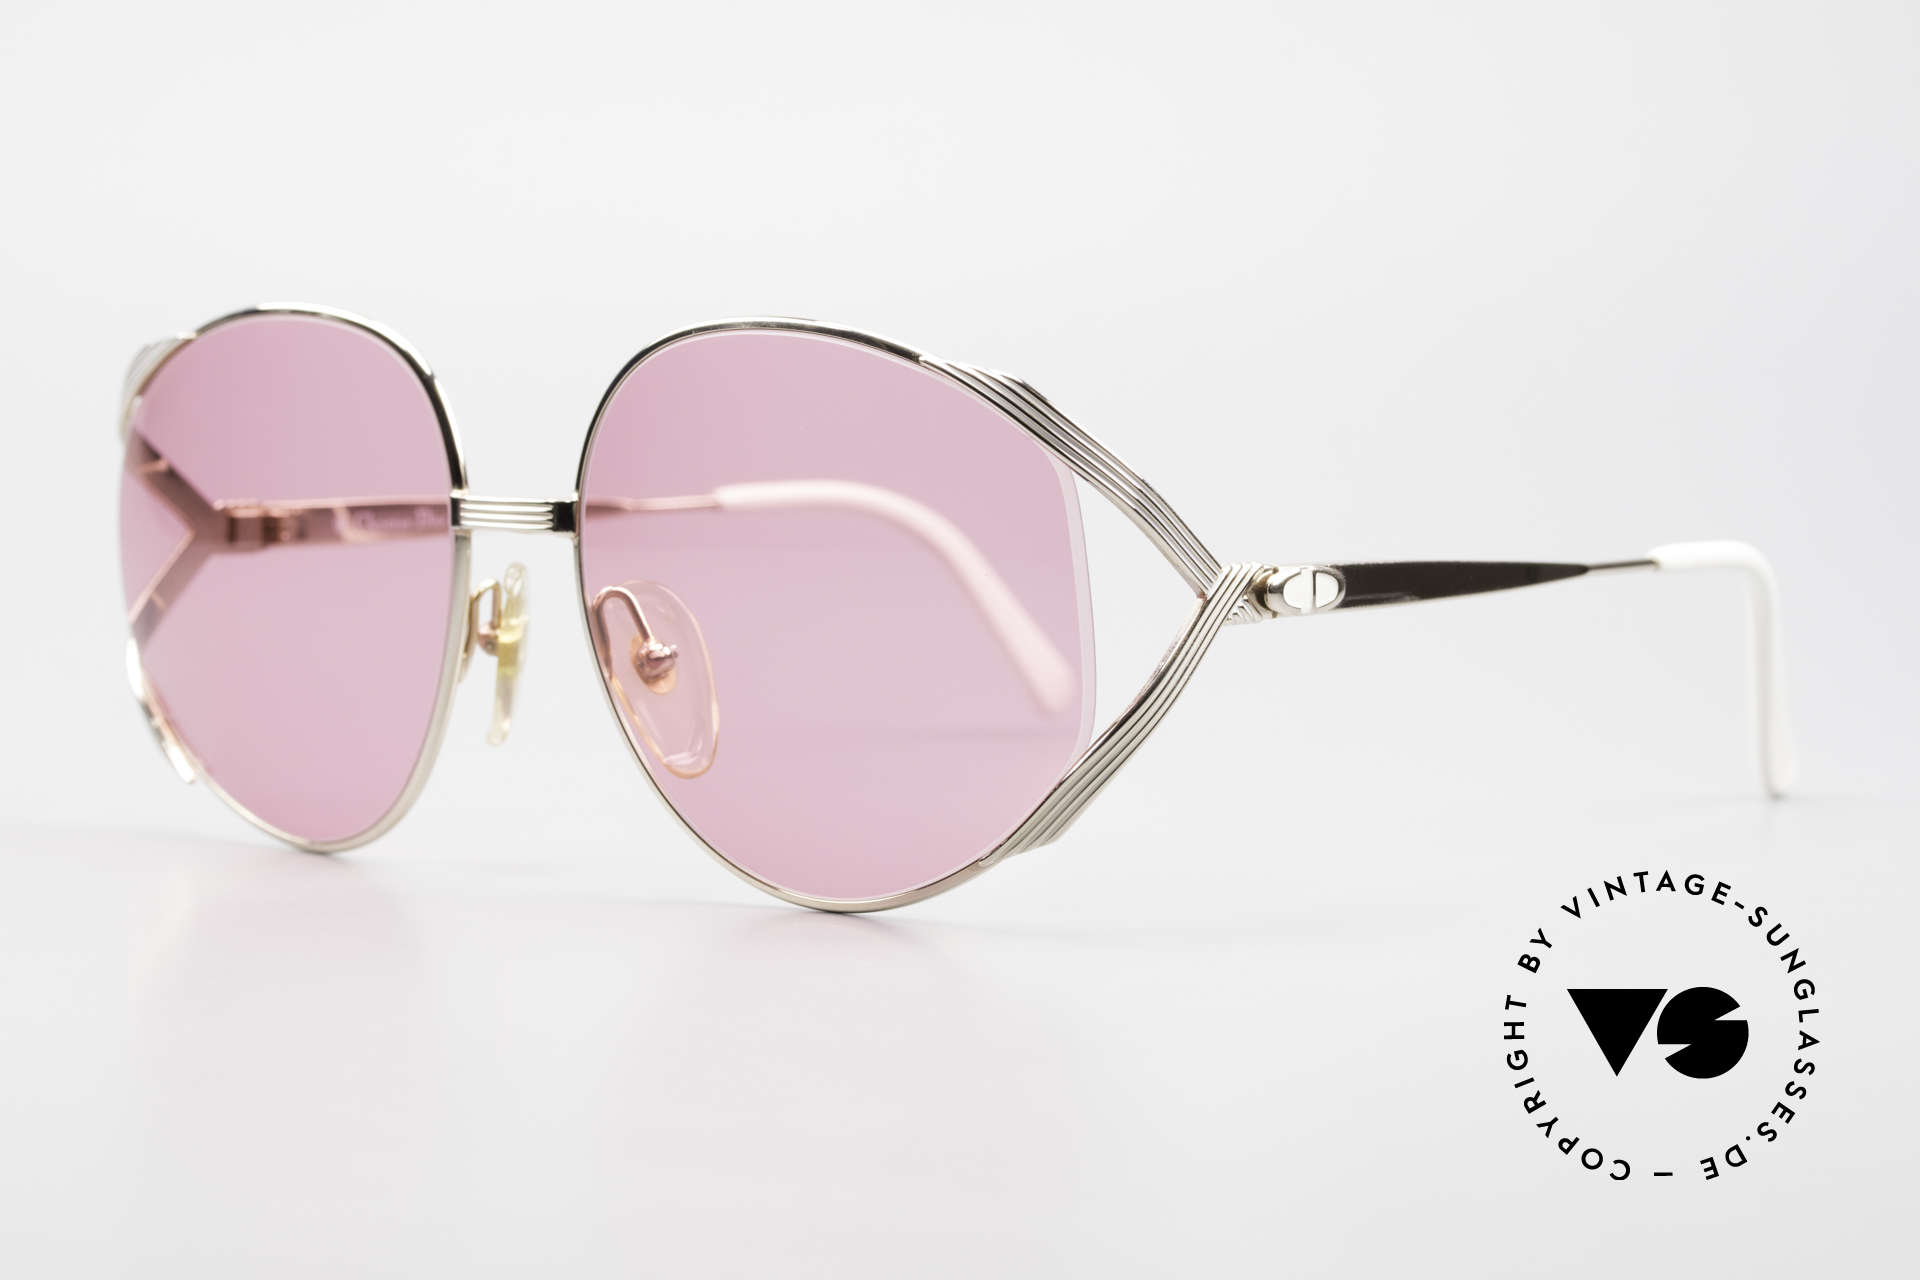 Christian Dior 2387 Ladies Pink 80's Sunglasses, gold-plated metal frame + beige/white accents, Made for Women